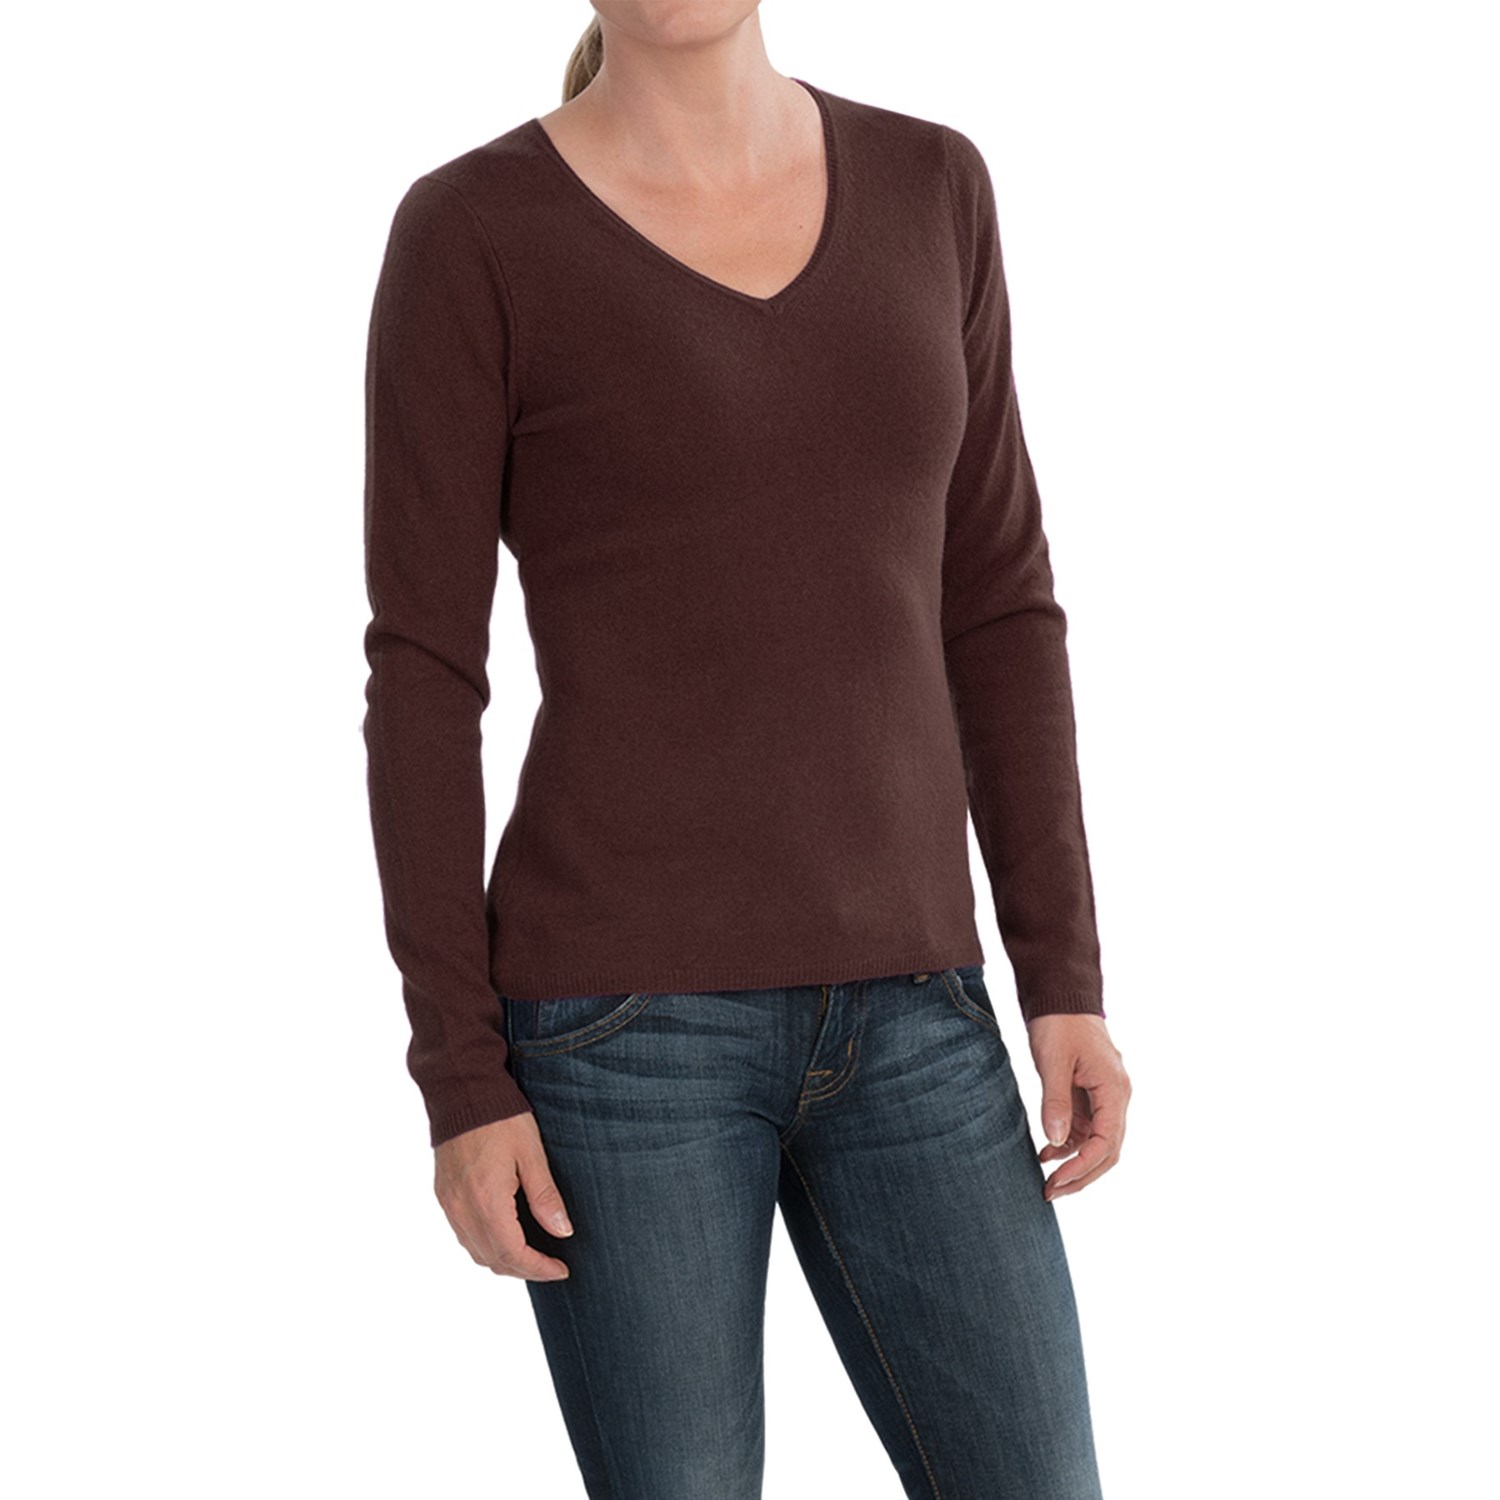 Free shipping BOTH ways on womens v neck sweaters, from our vast selection of styles. Fast delivery, and 24/7/ real-person service with a smile. Click or call